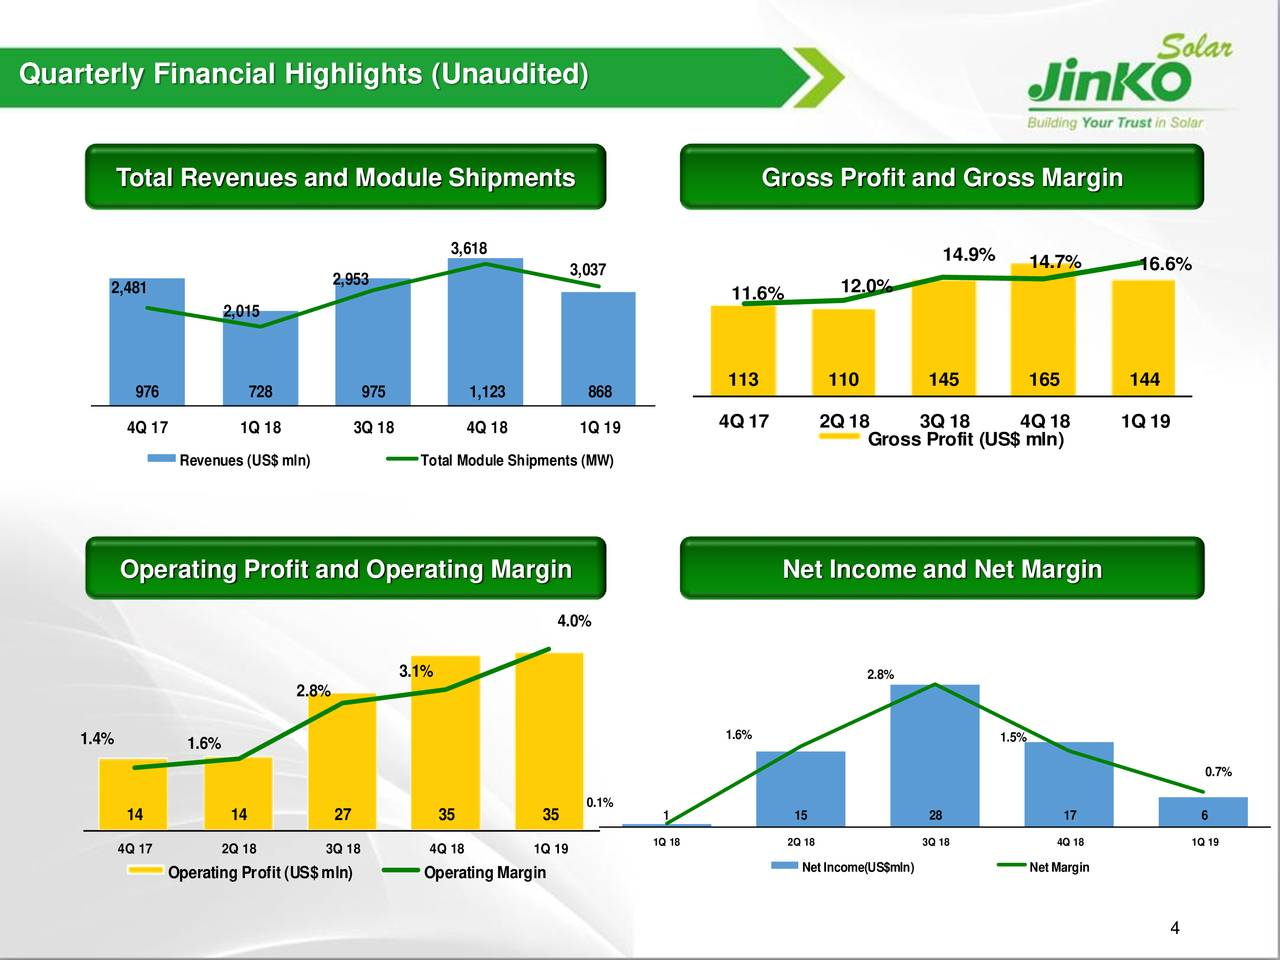 JinkoSolar Is Well Positioned, But We Worry About Cash Flow